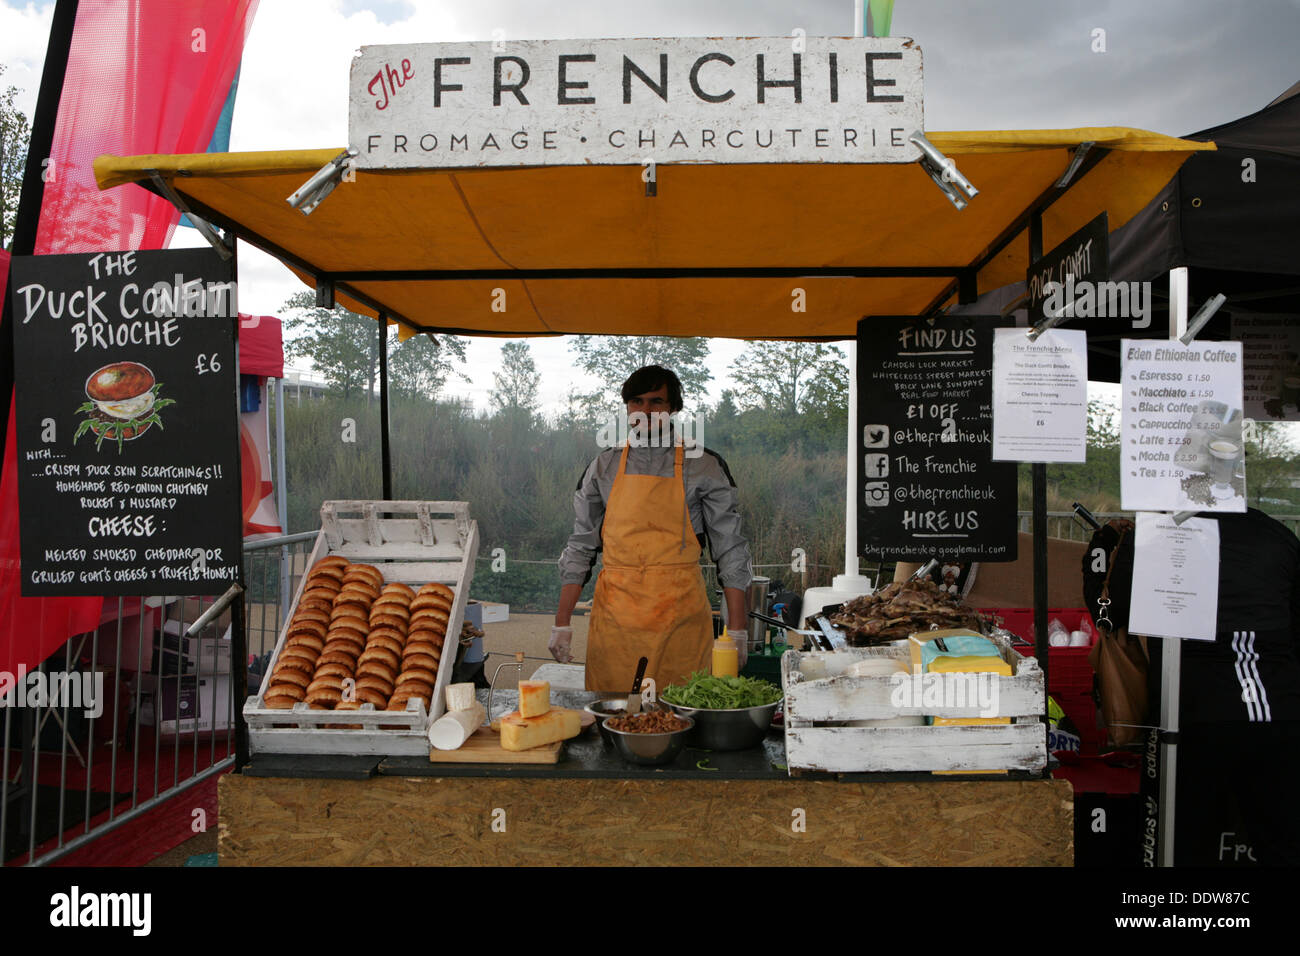 Stratford, UK. 7th September 2013. Frenchie food stall at the National Paralympic Day Credit: Keith larby/Alamy Live News - Stock Image